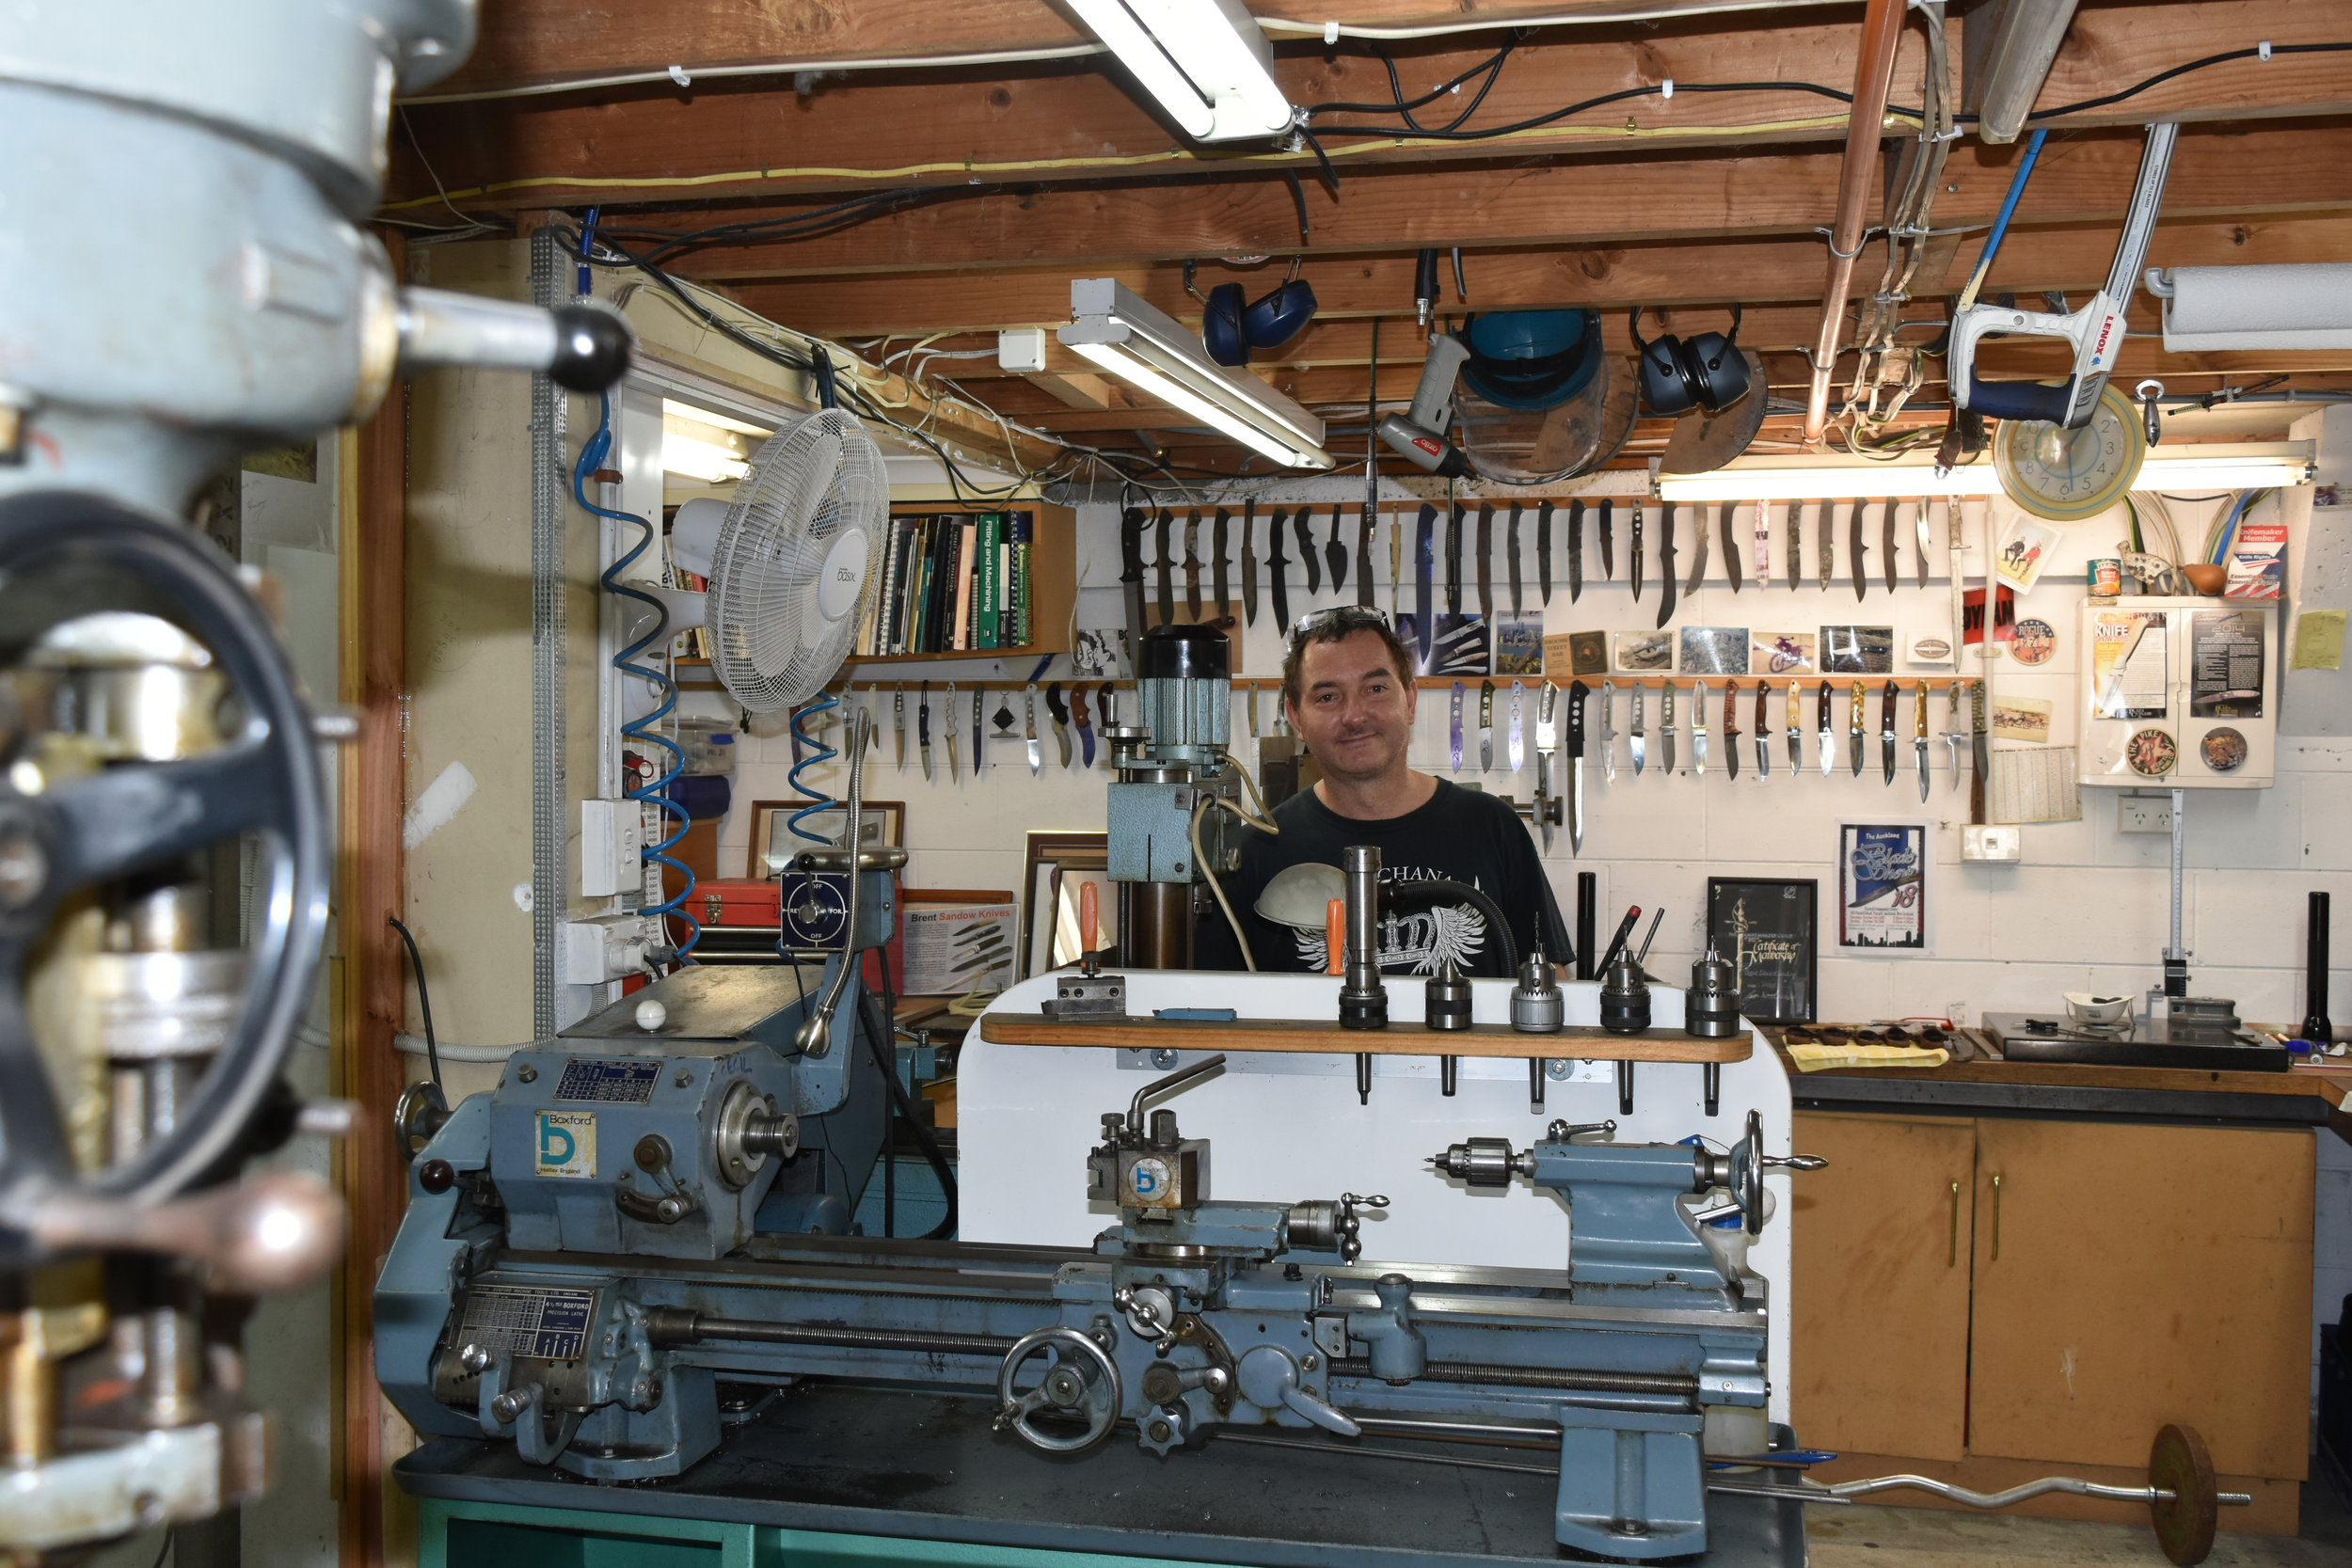 We were very impressed with Brent's workshop and set up